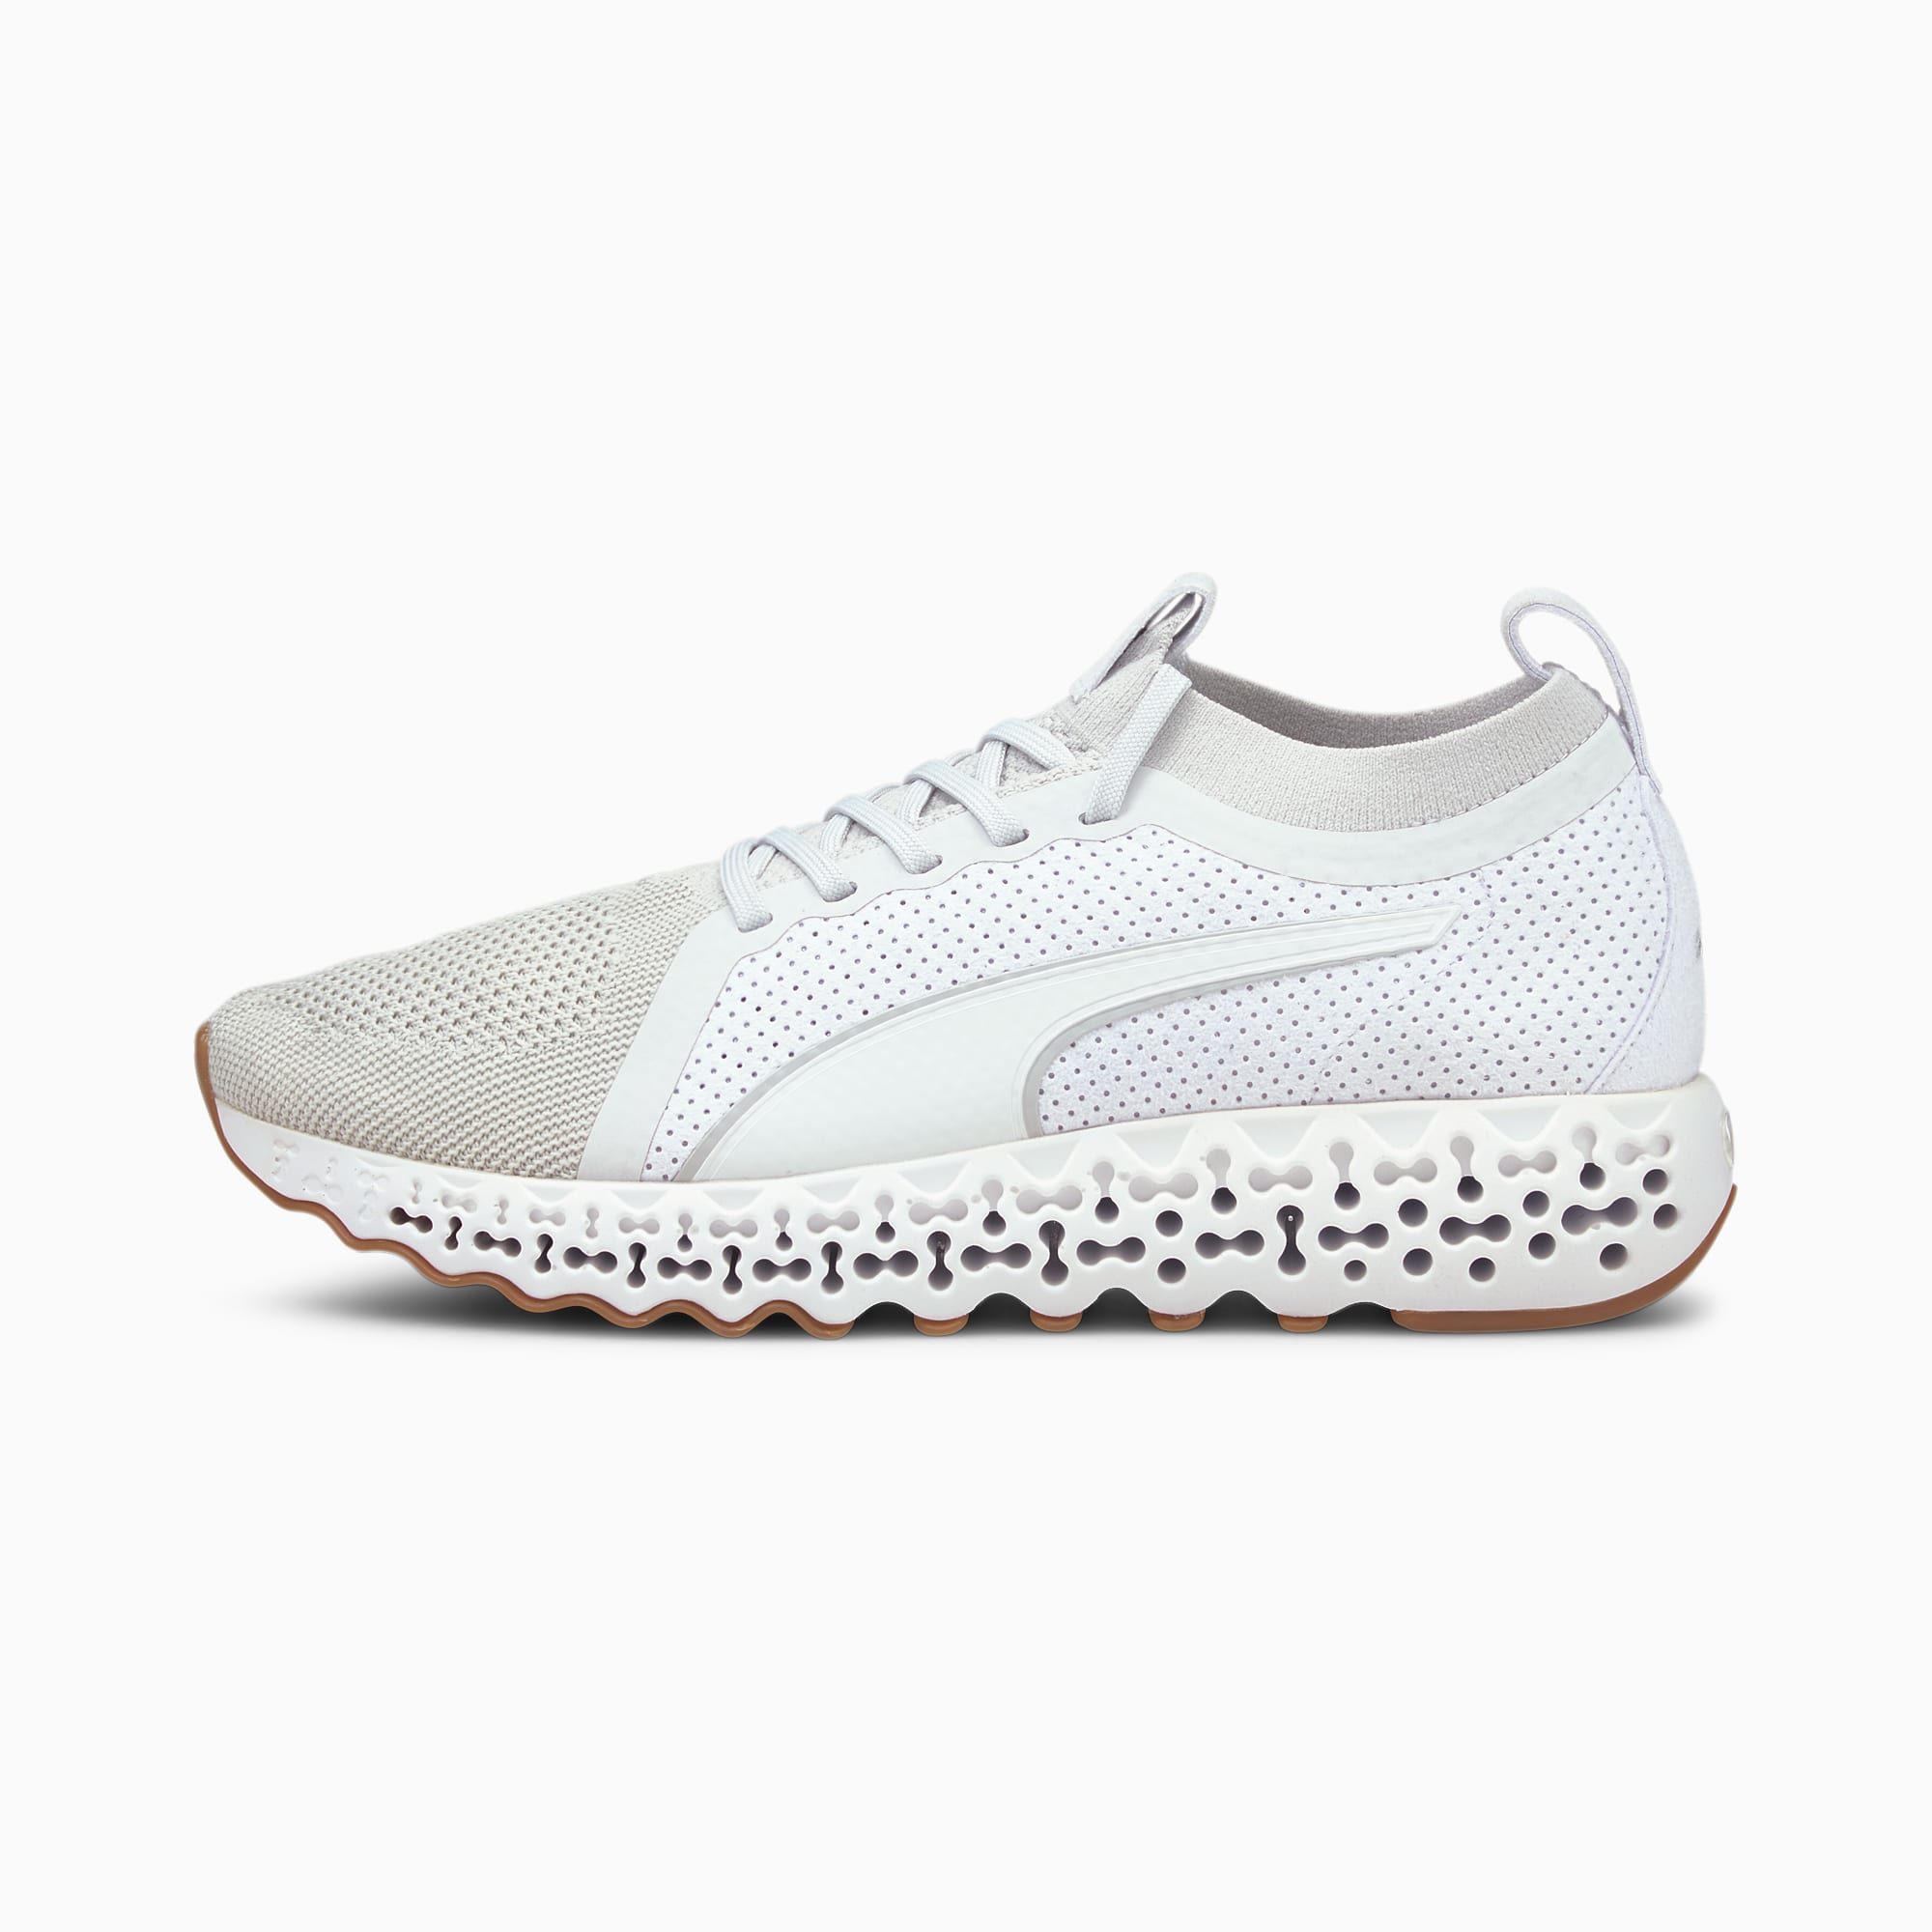 Calibrate Runner Luxe Shoes | PUMA US